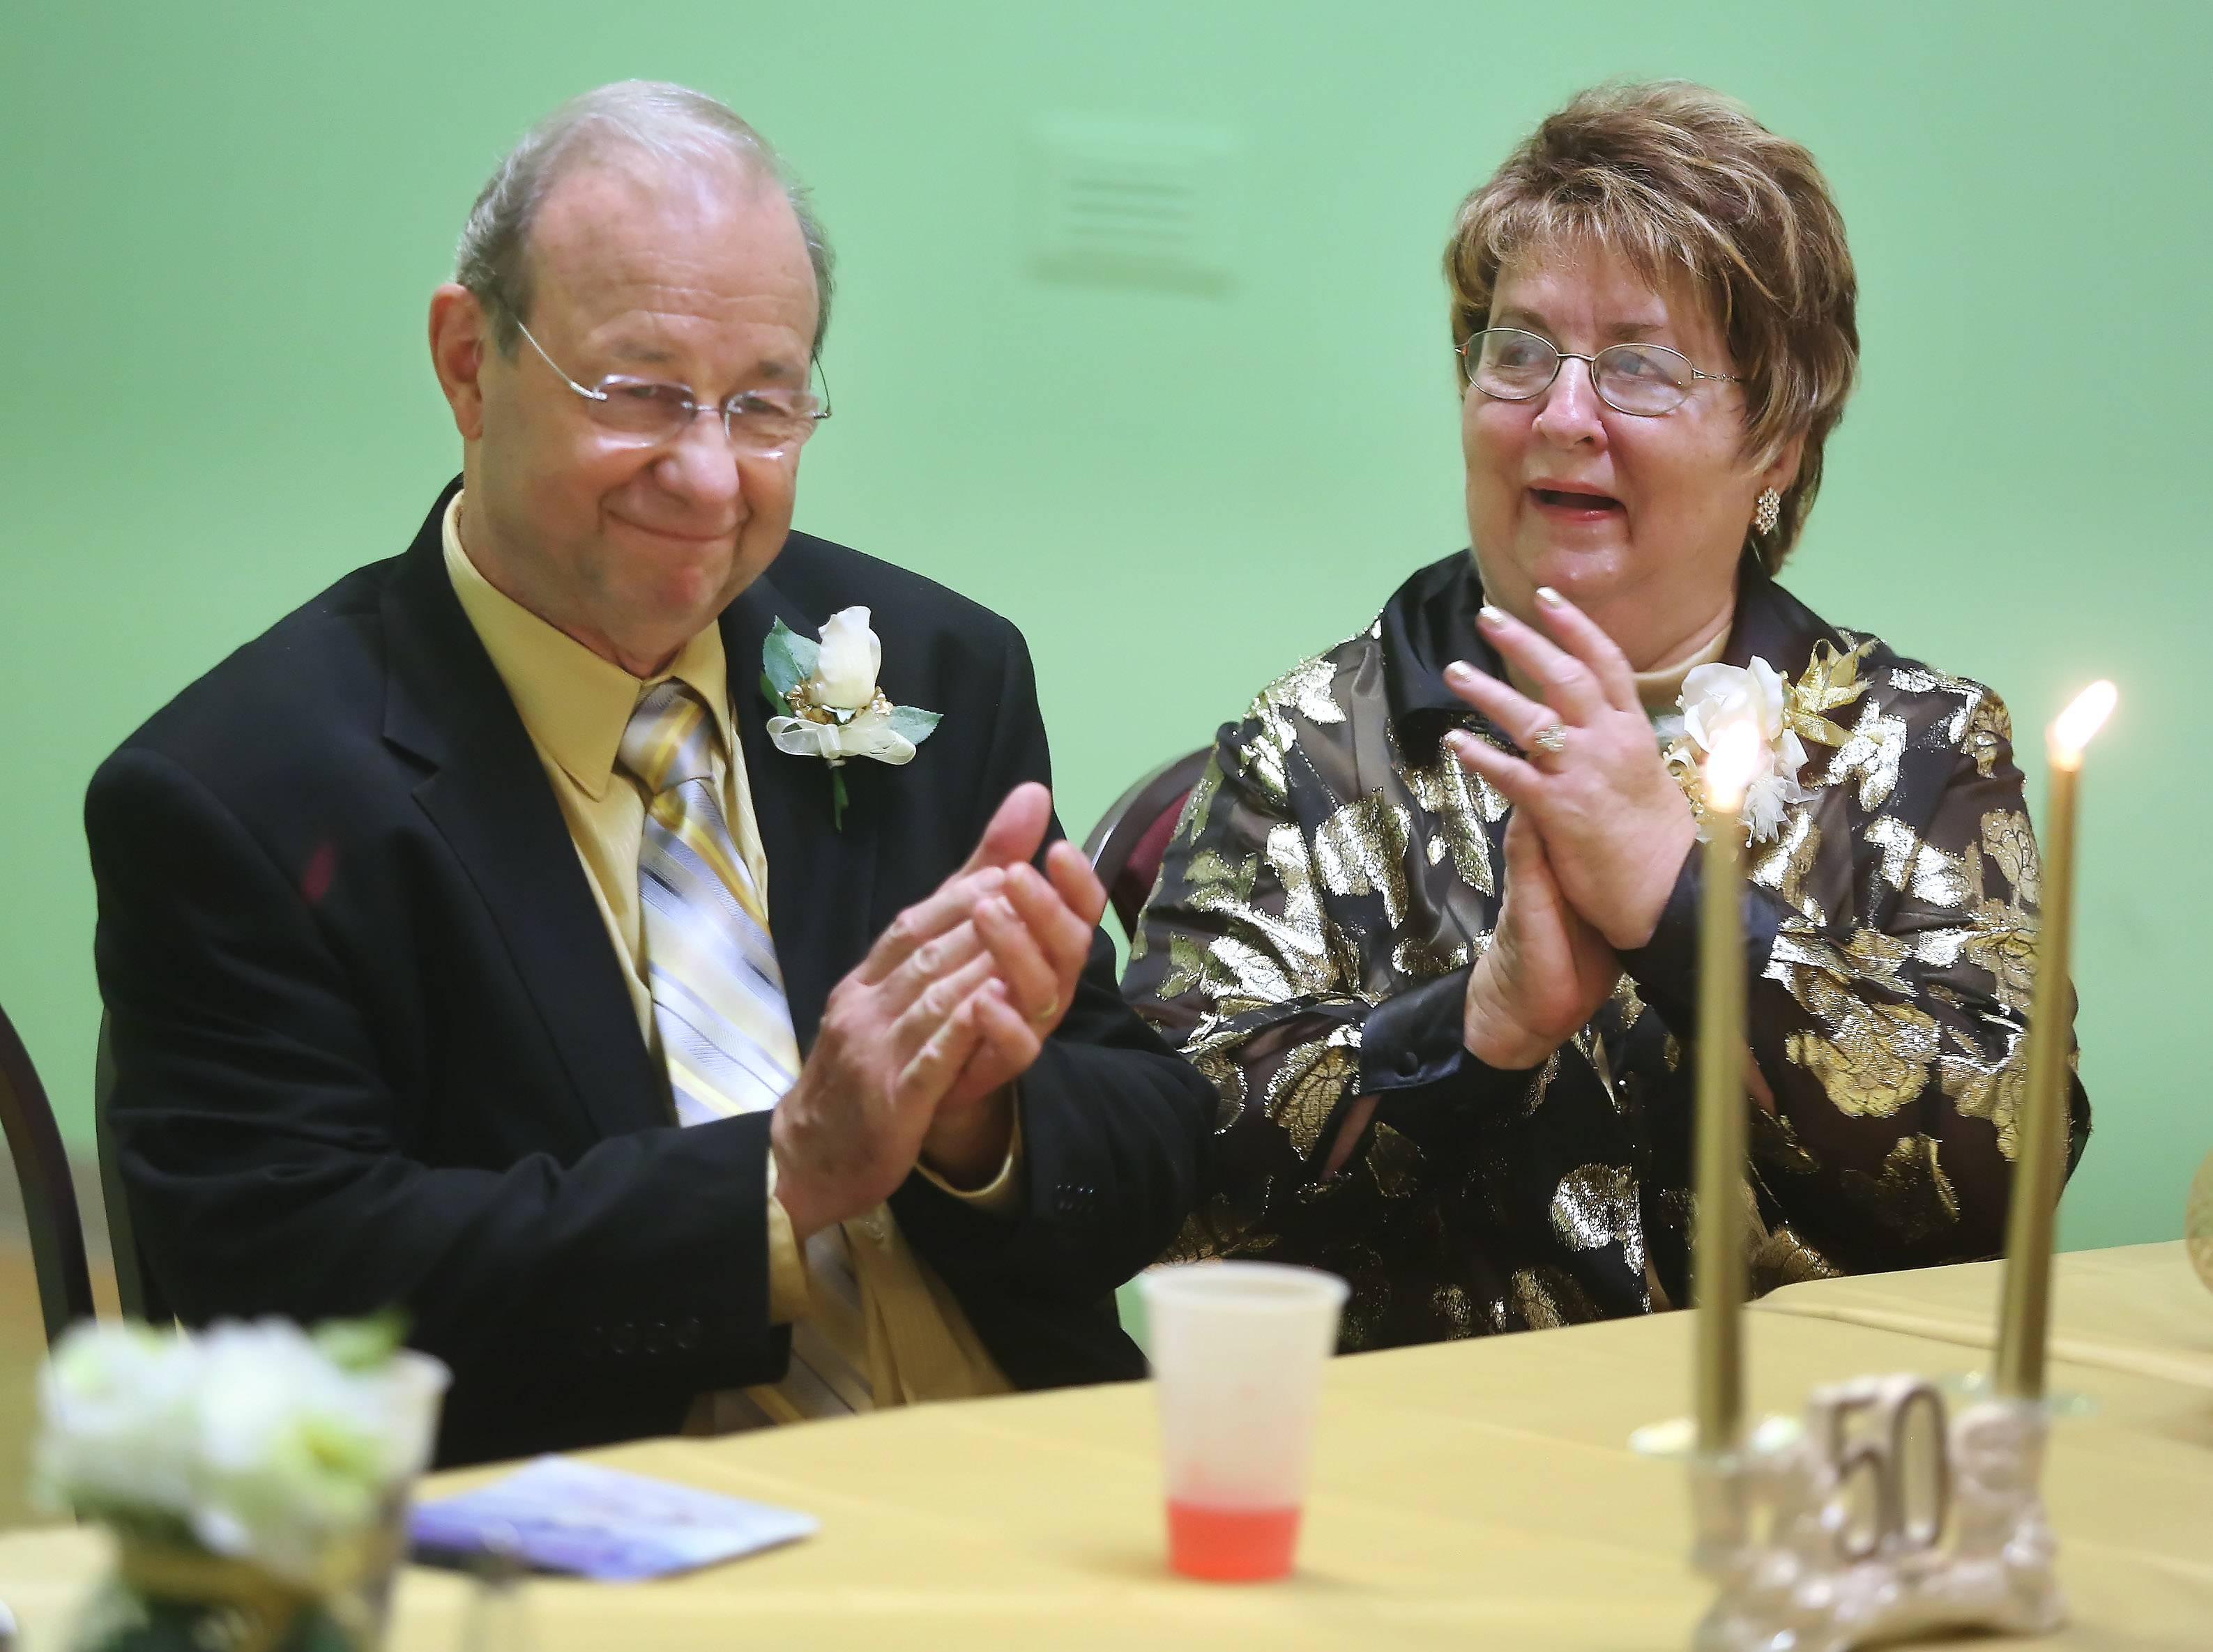 Marilyn and Warren Sunderlage clap after a speech was made in their honor during their 50th anniversary celebration Sunday at the Vogelei Barn in Hoffman Estates. Warren is the great-great grandson on Johann Sunderlage, the first settler of Schaumburg Township, and their family holds a significant place in Hoffman Estates history.